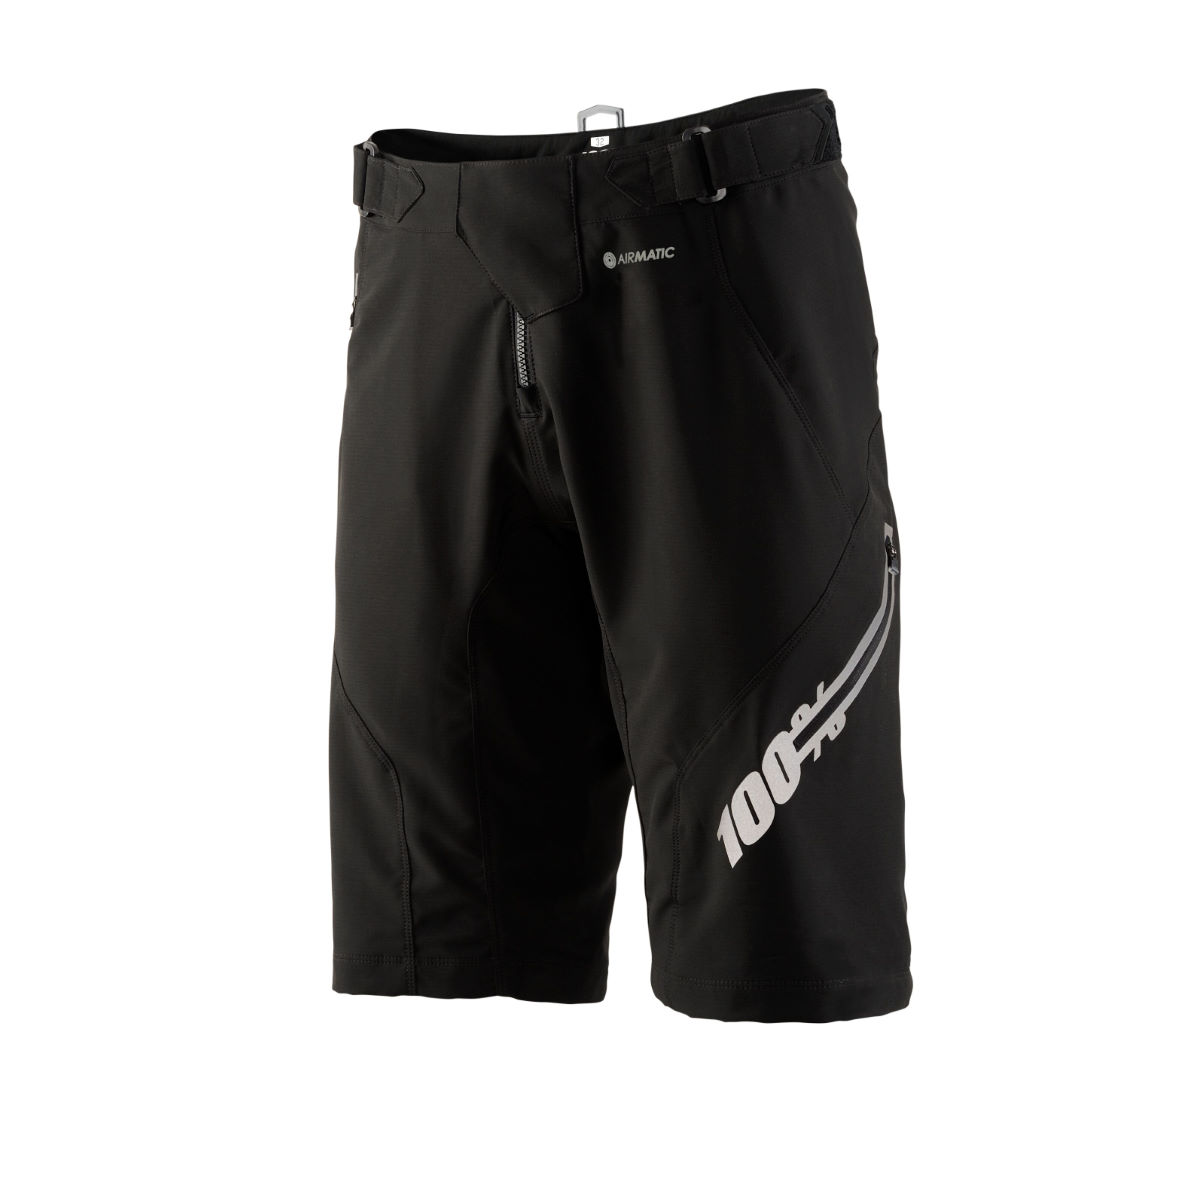 100% Airmatic Short - Forever Black - Bermudas